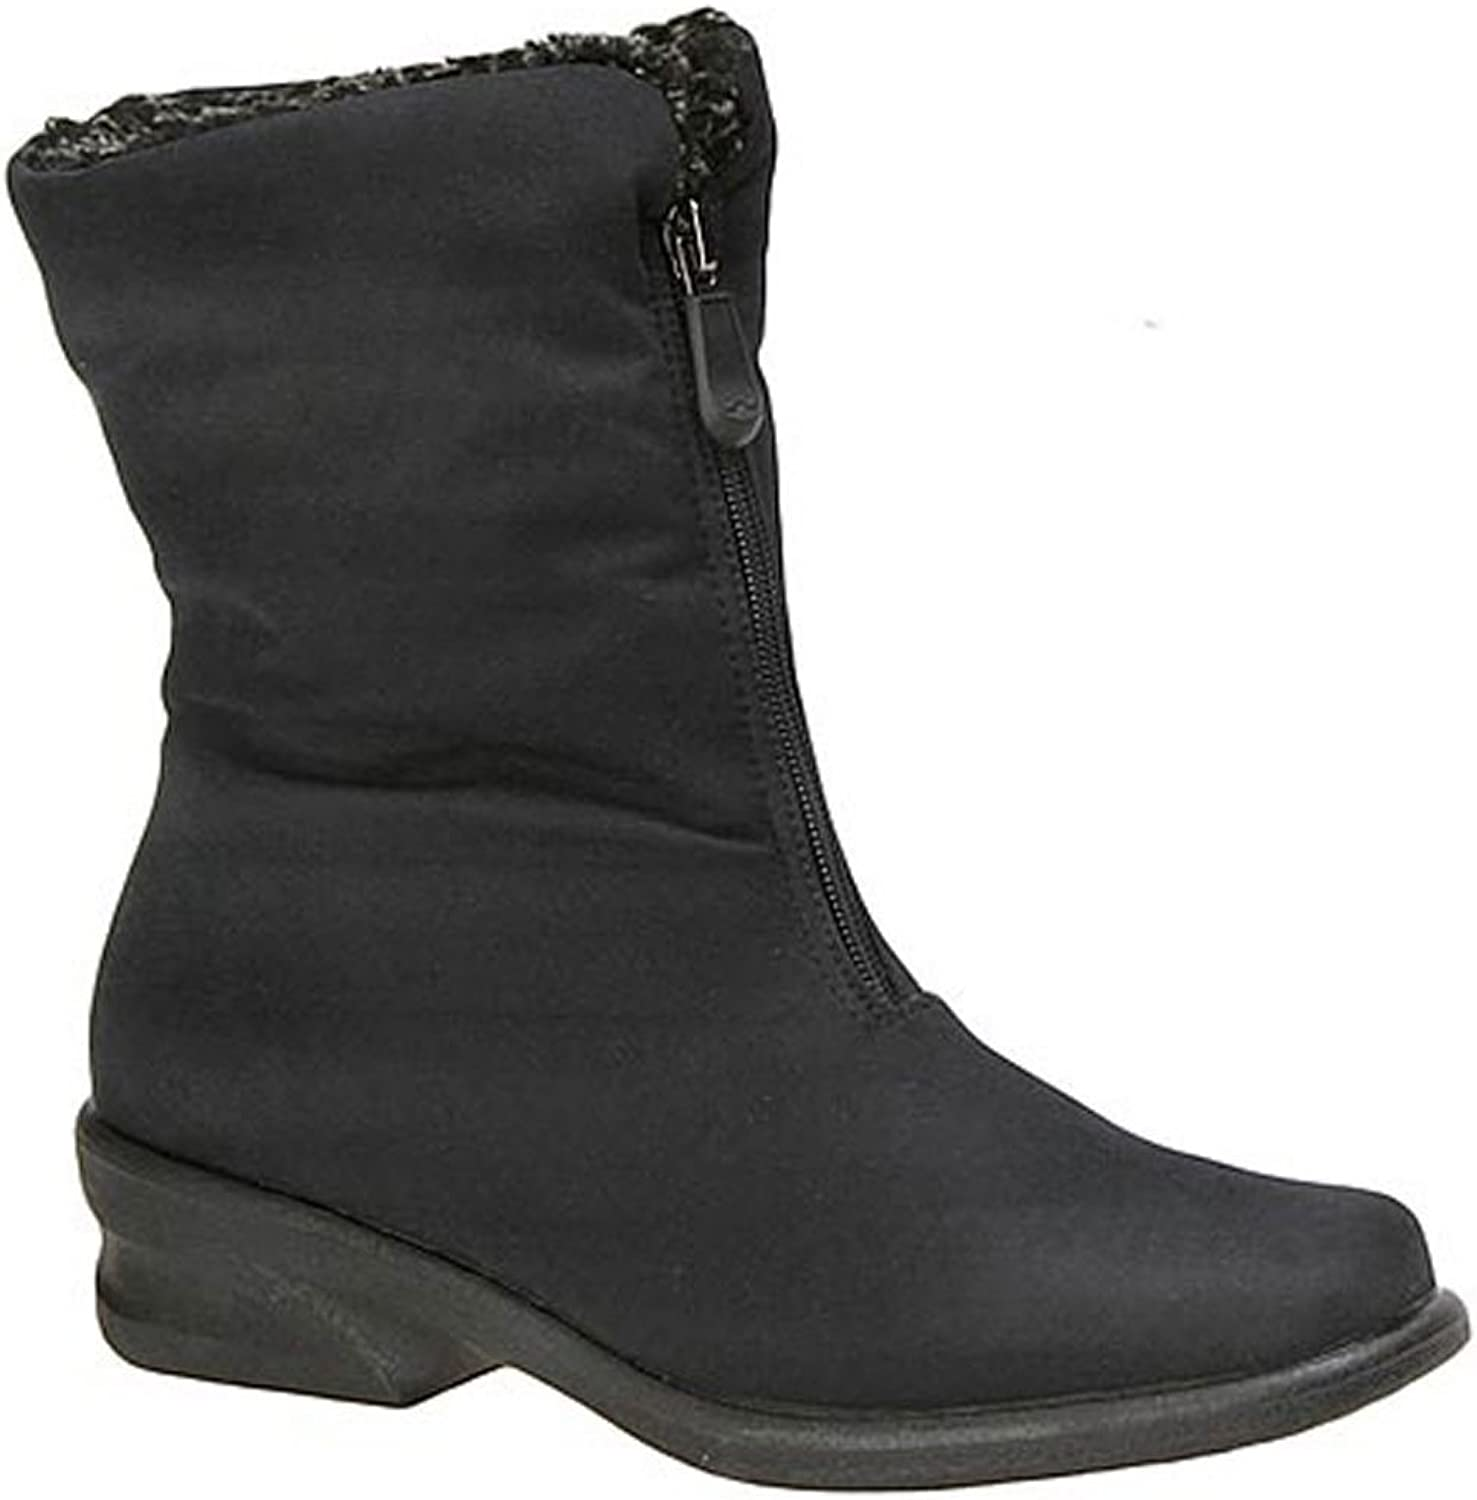 Toe Warmers Women Boots Michelle, Black, Size 8.5